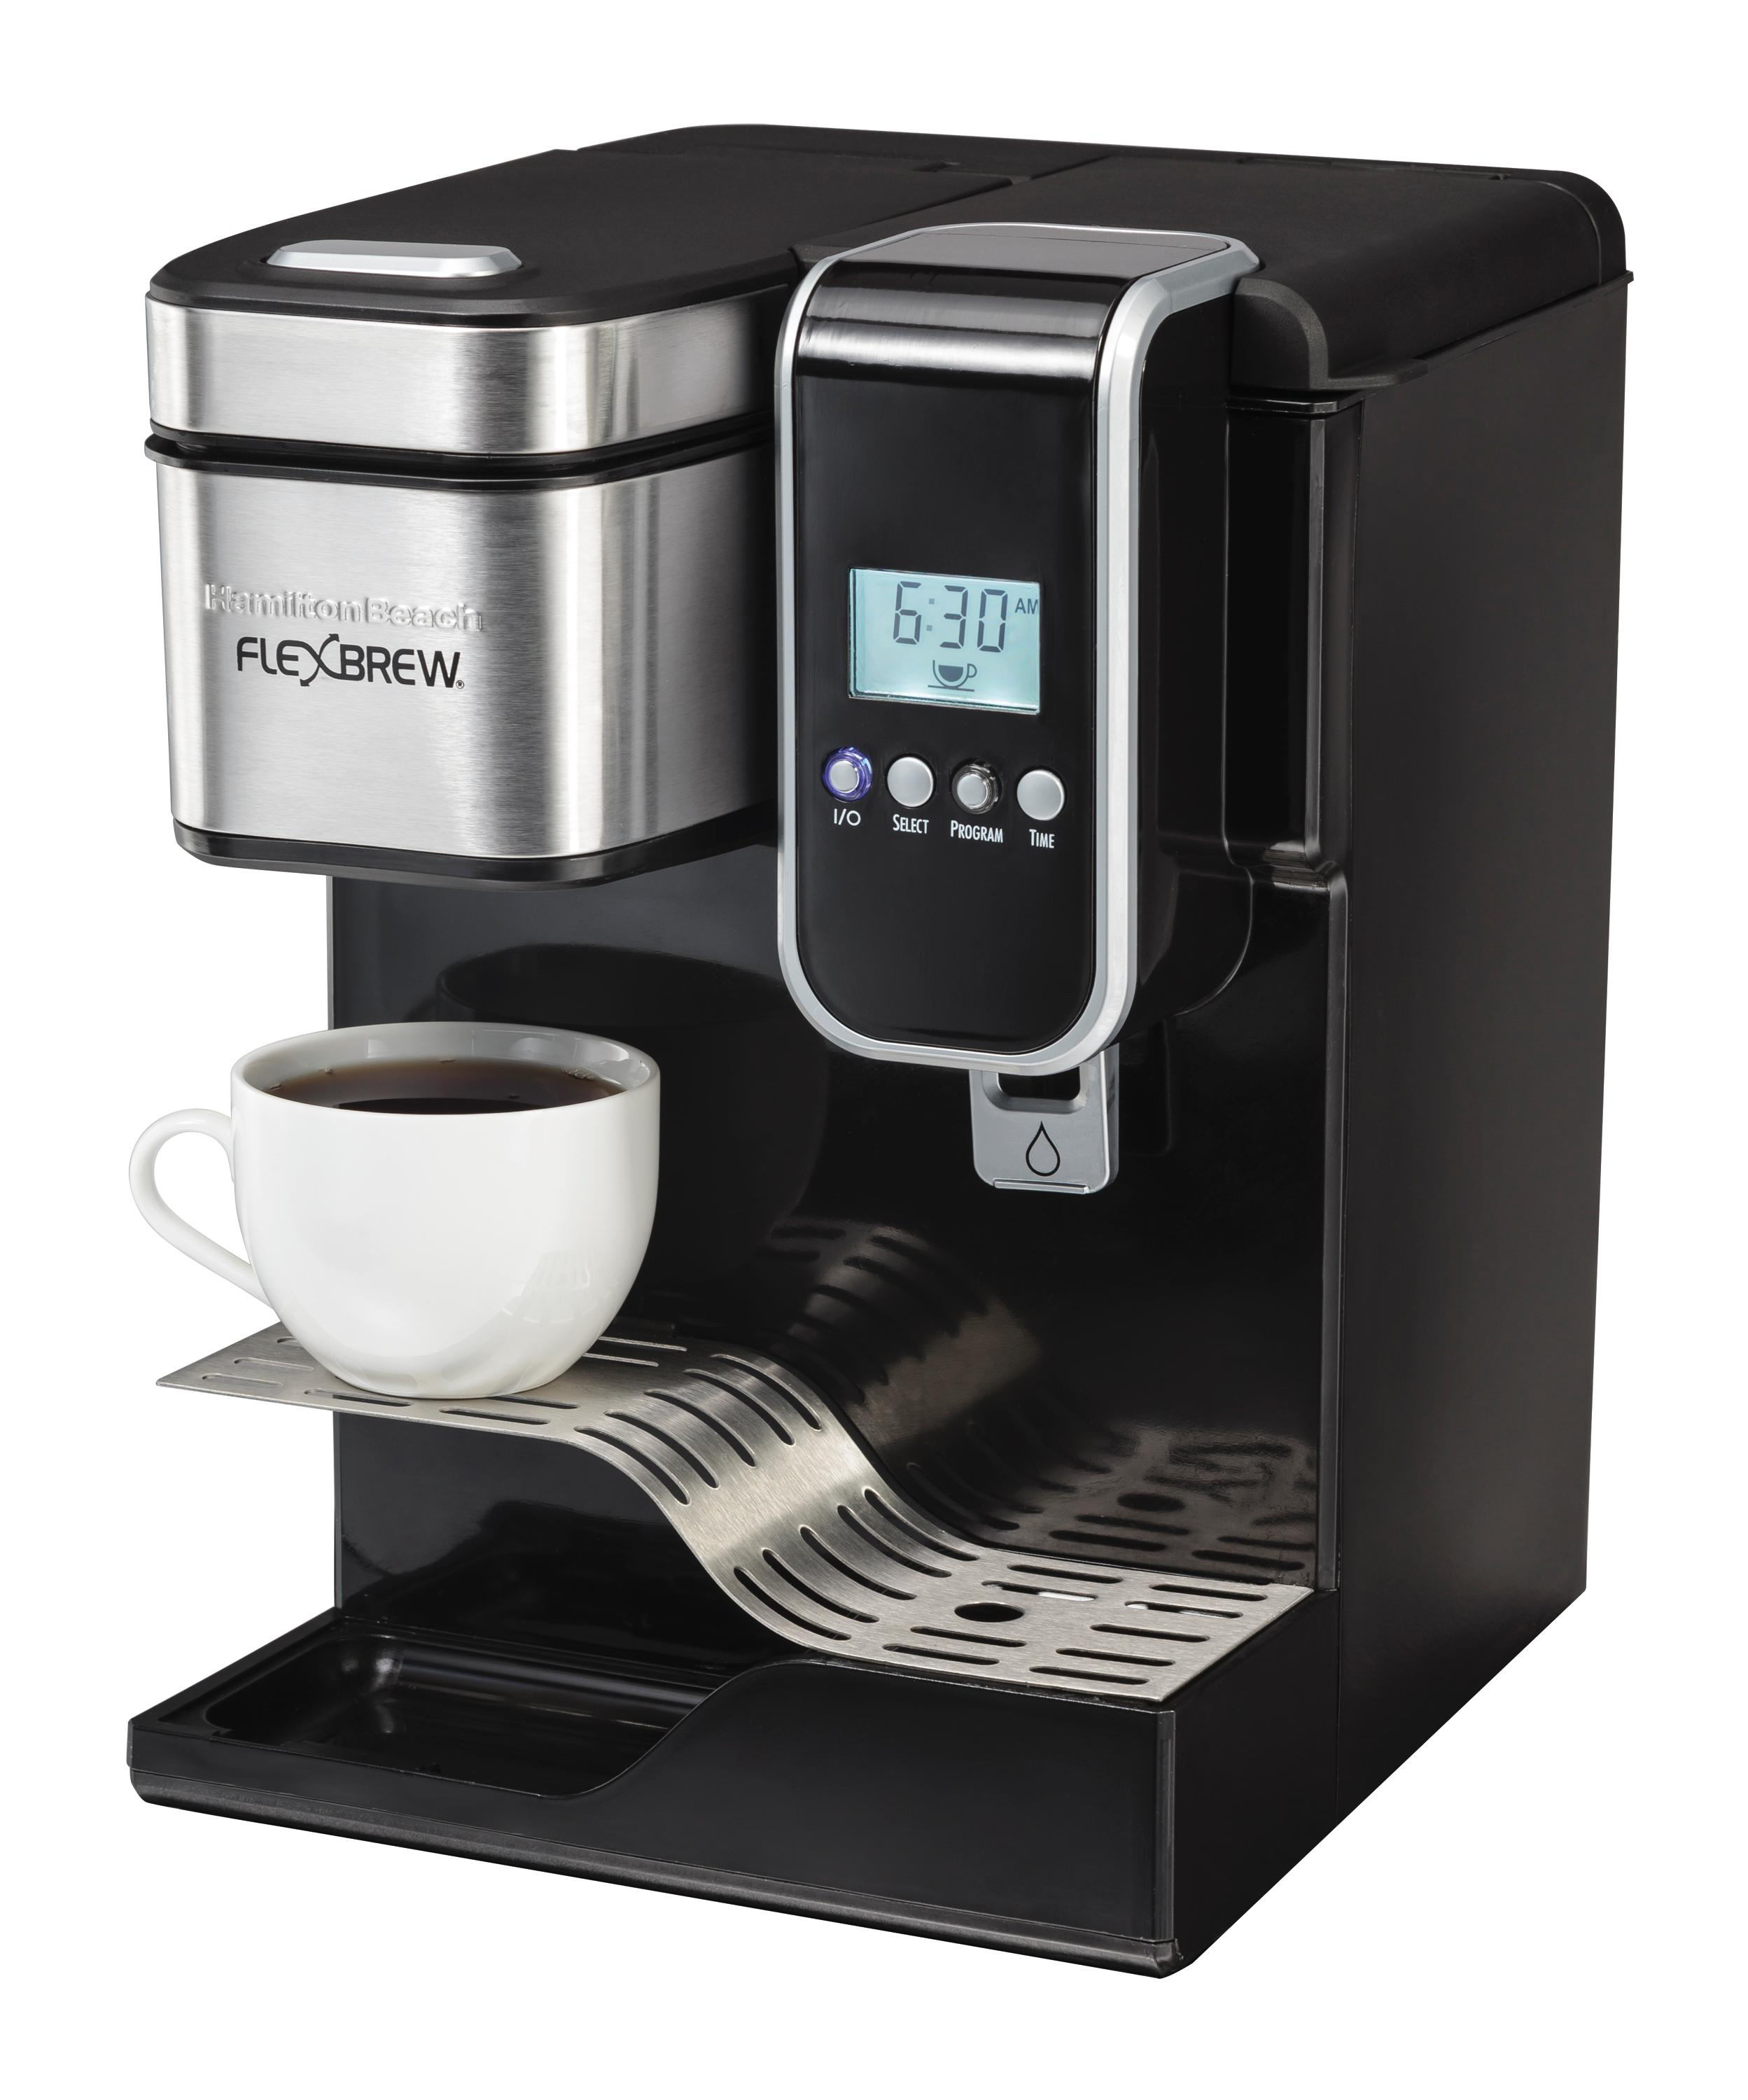 Amazon.com: Hamilton Beach Single-Serve Coffee Maker, Programmable FlexBrew with Hot Water ...